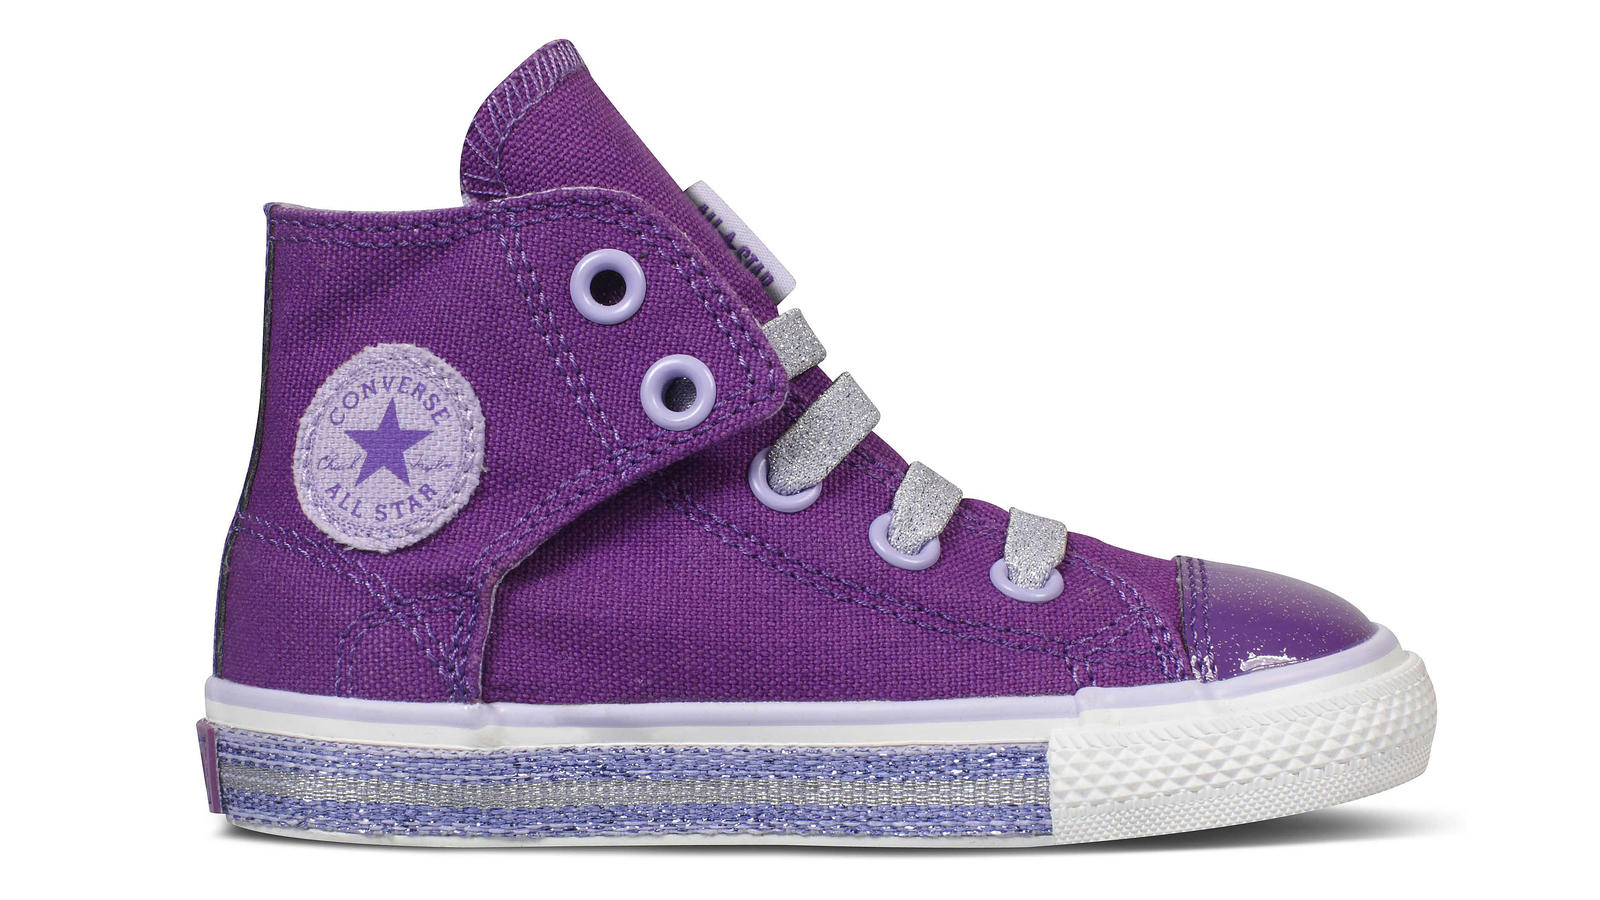 480c57e642f1d4 Converse Announces Holiday 2012 Chuck Taylor All Star Footwear ...